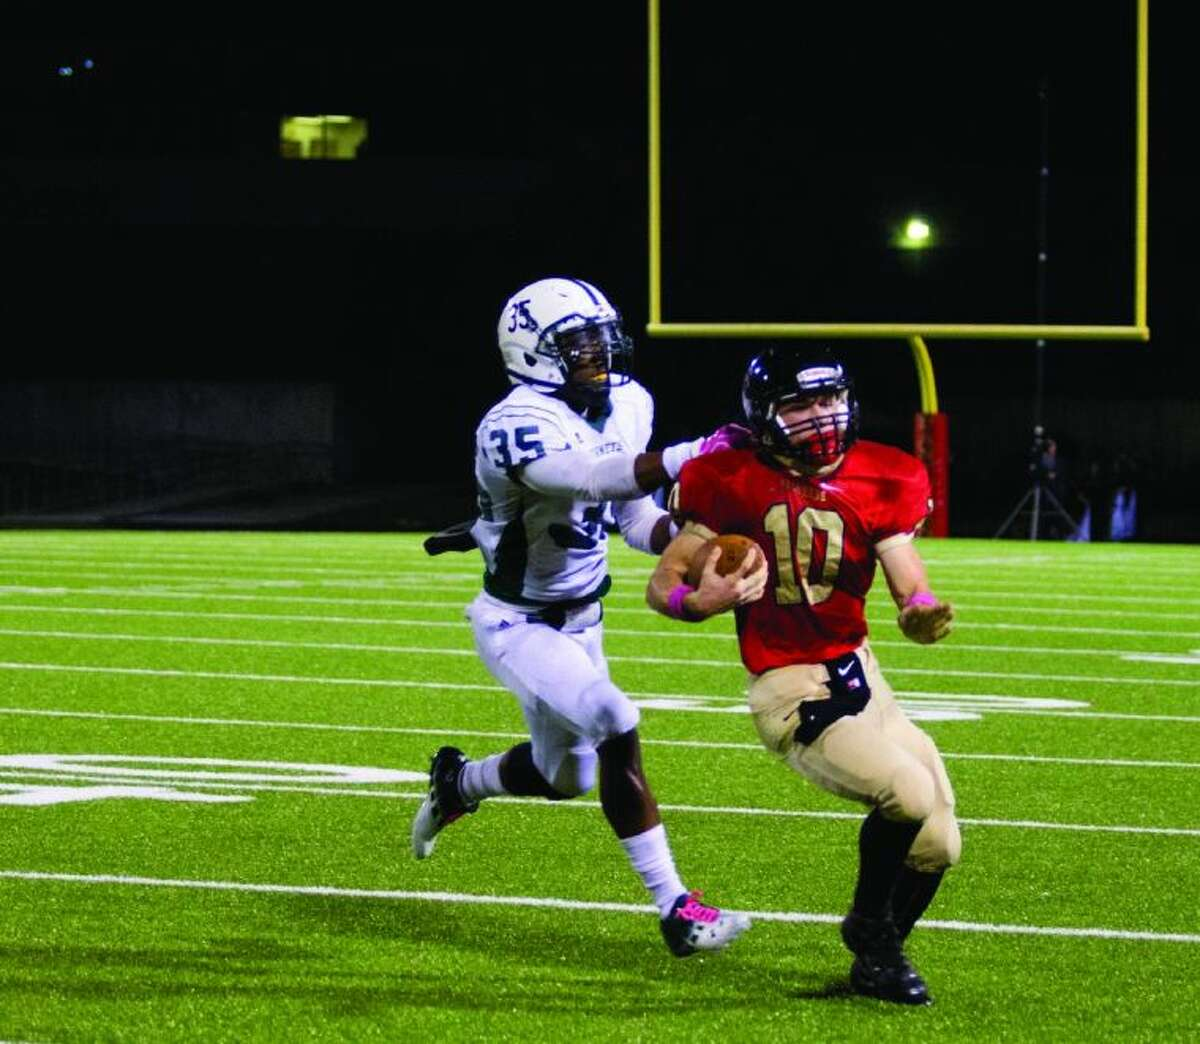 Caney Creek wide receiver Robert Gordon runs with the ball and is pushed out of bounds by Huntsville linebacker Keelan Greene during a game Friday night at the Moorhead Stadium in Conroe. Go to HCNPics.com to view and purchase this photo, and others like it.